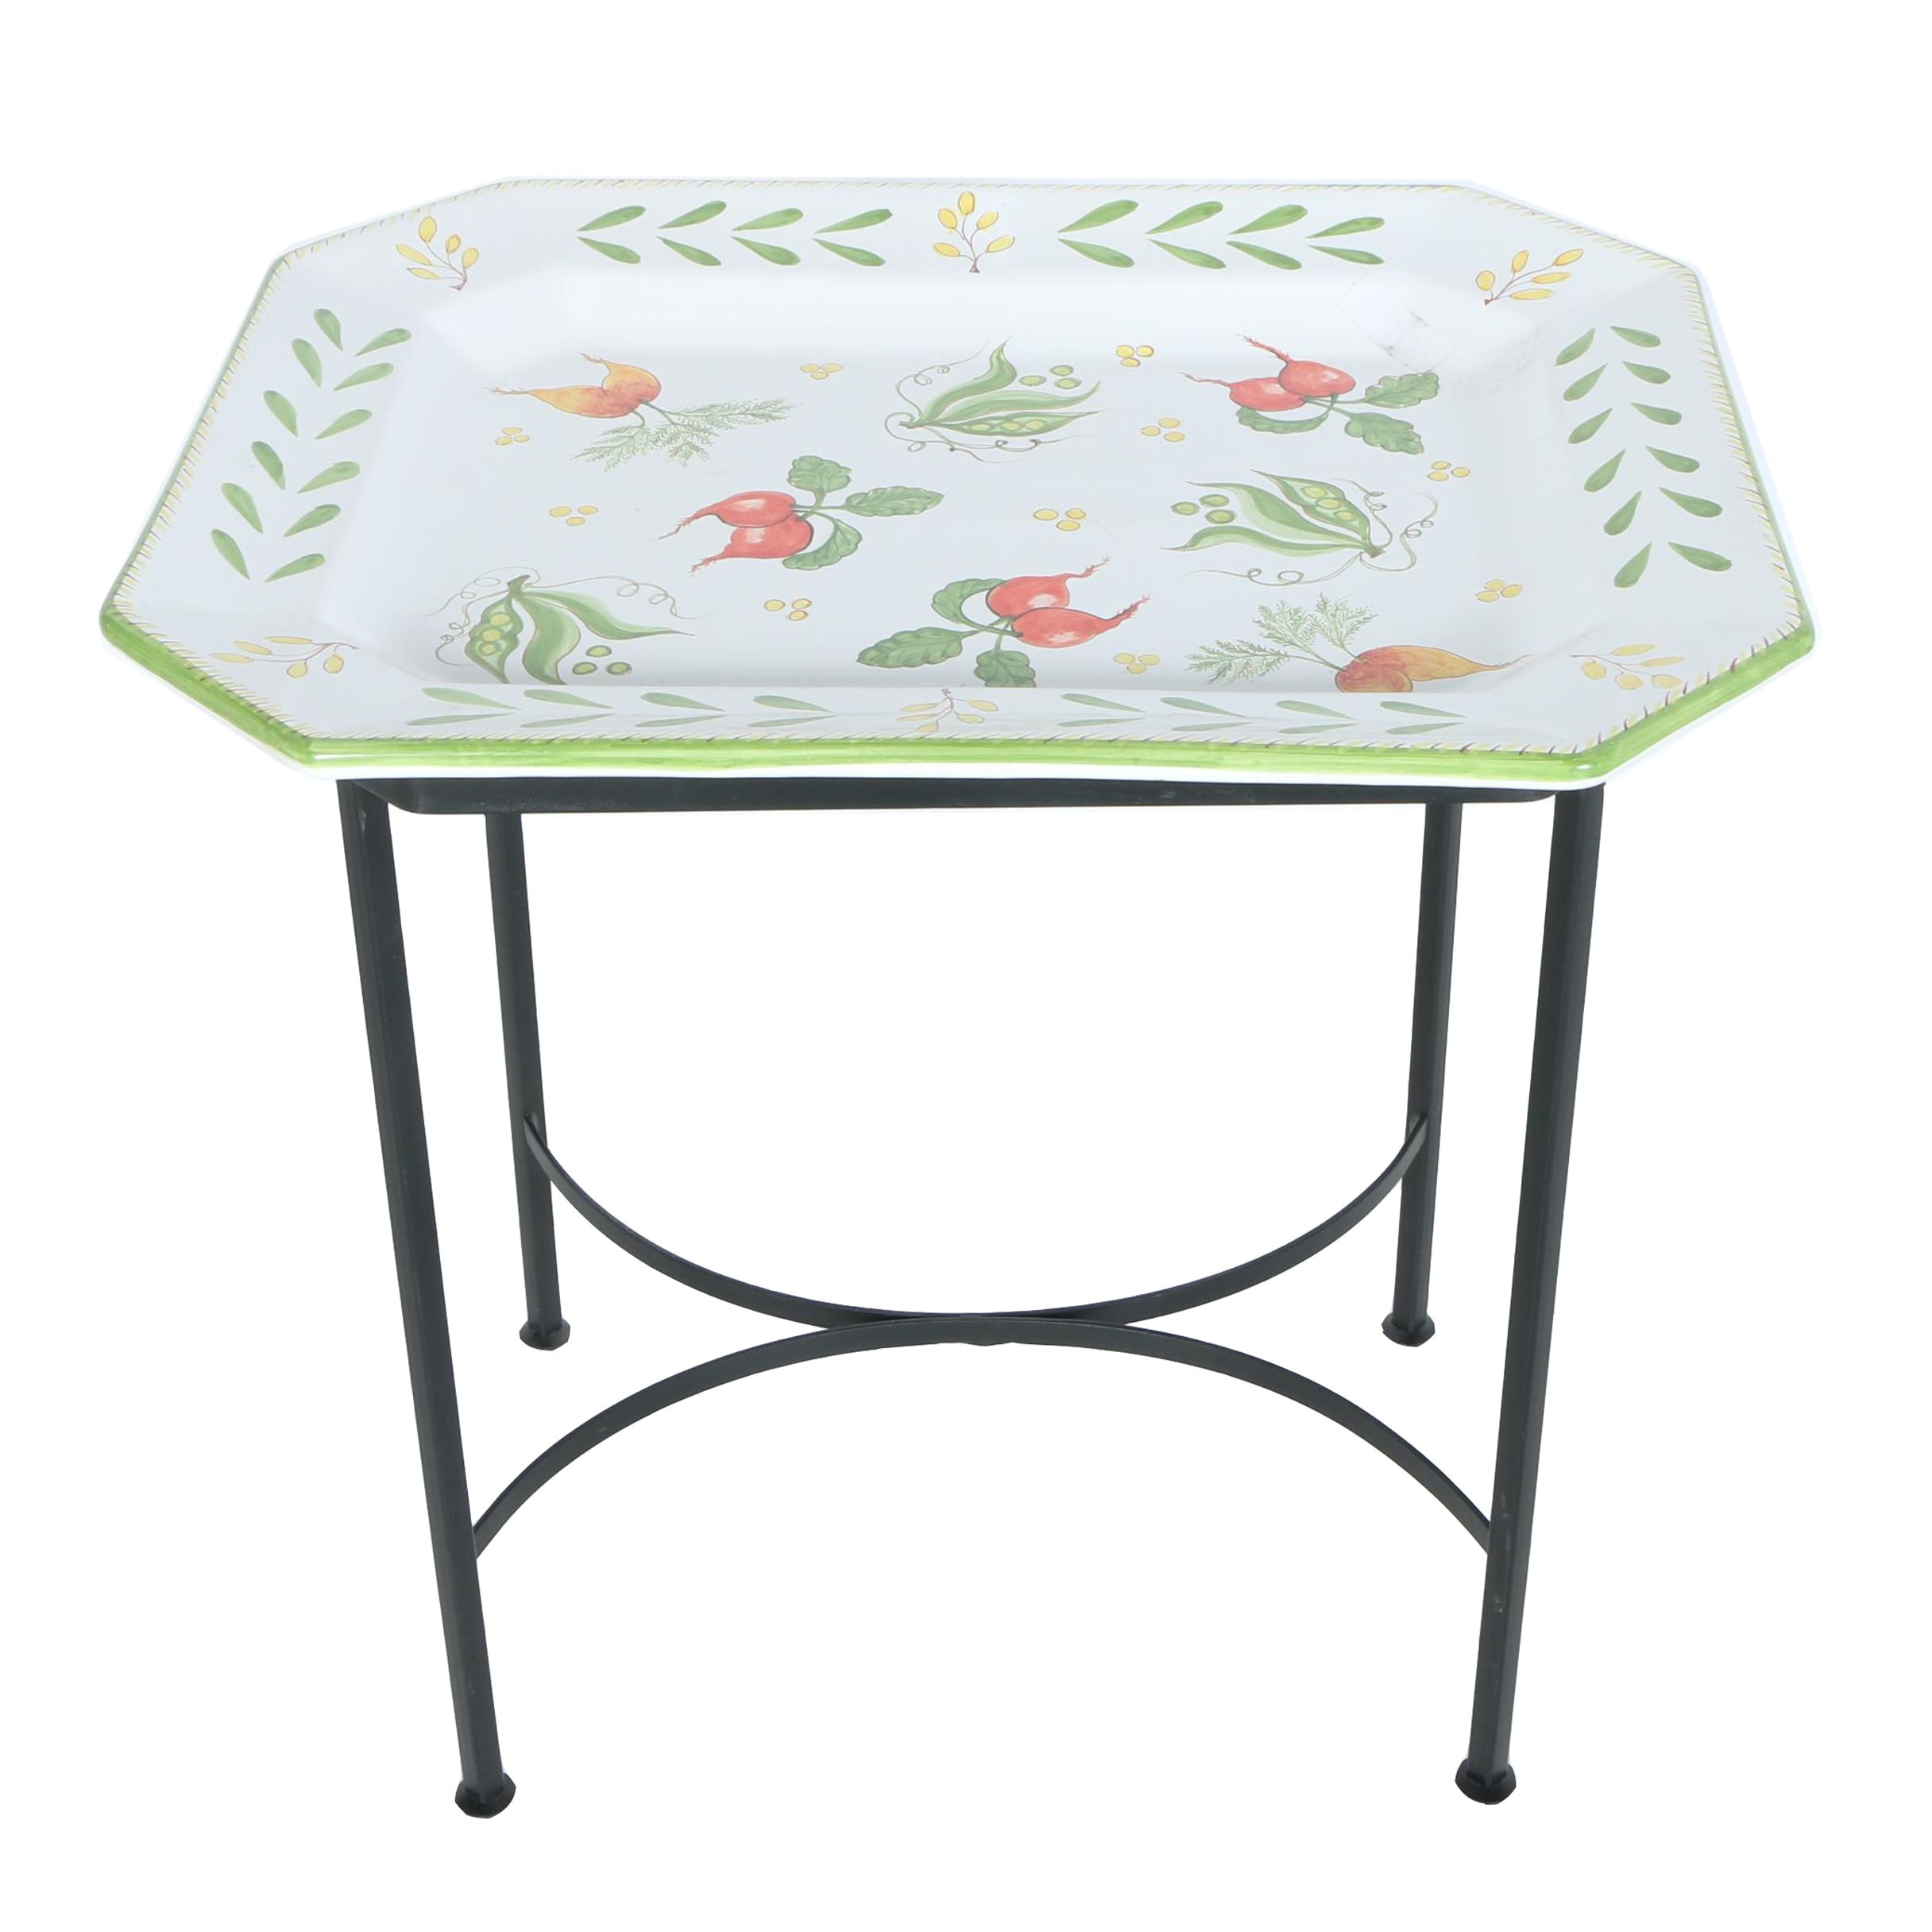 Deruta Hand-Painted Italian Ceramic and Metal Tray Table